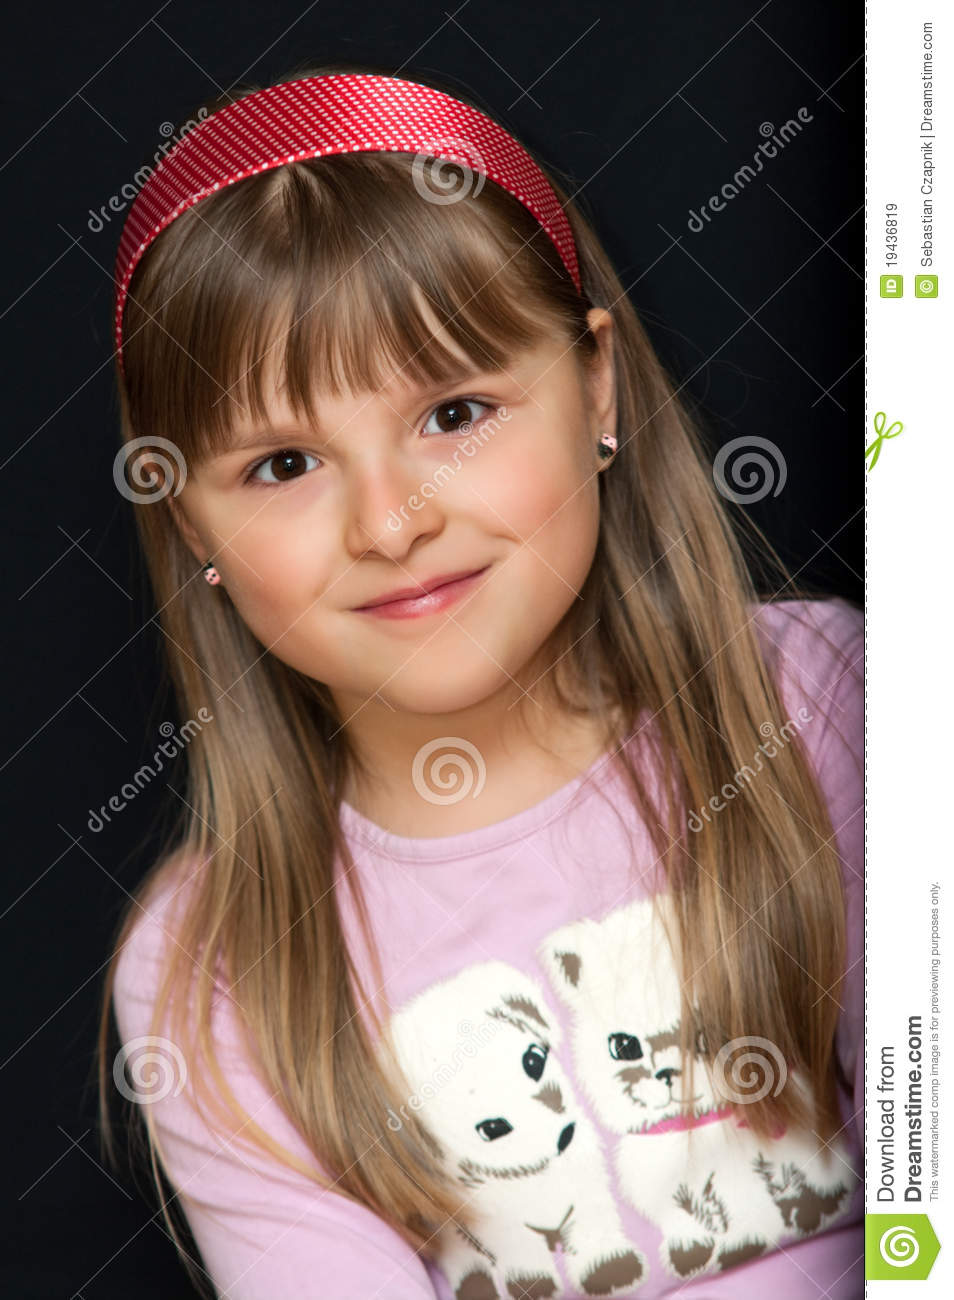 Young Girl Portrait Royalty Free Stock Images - Image